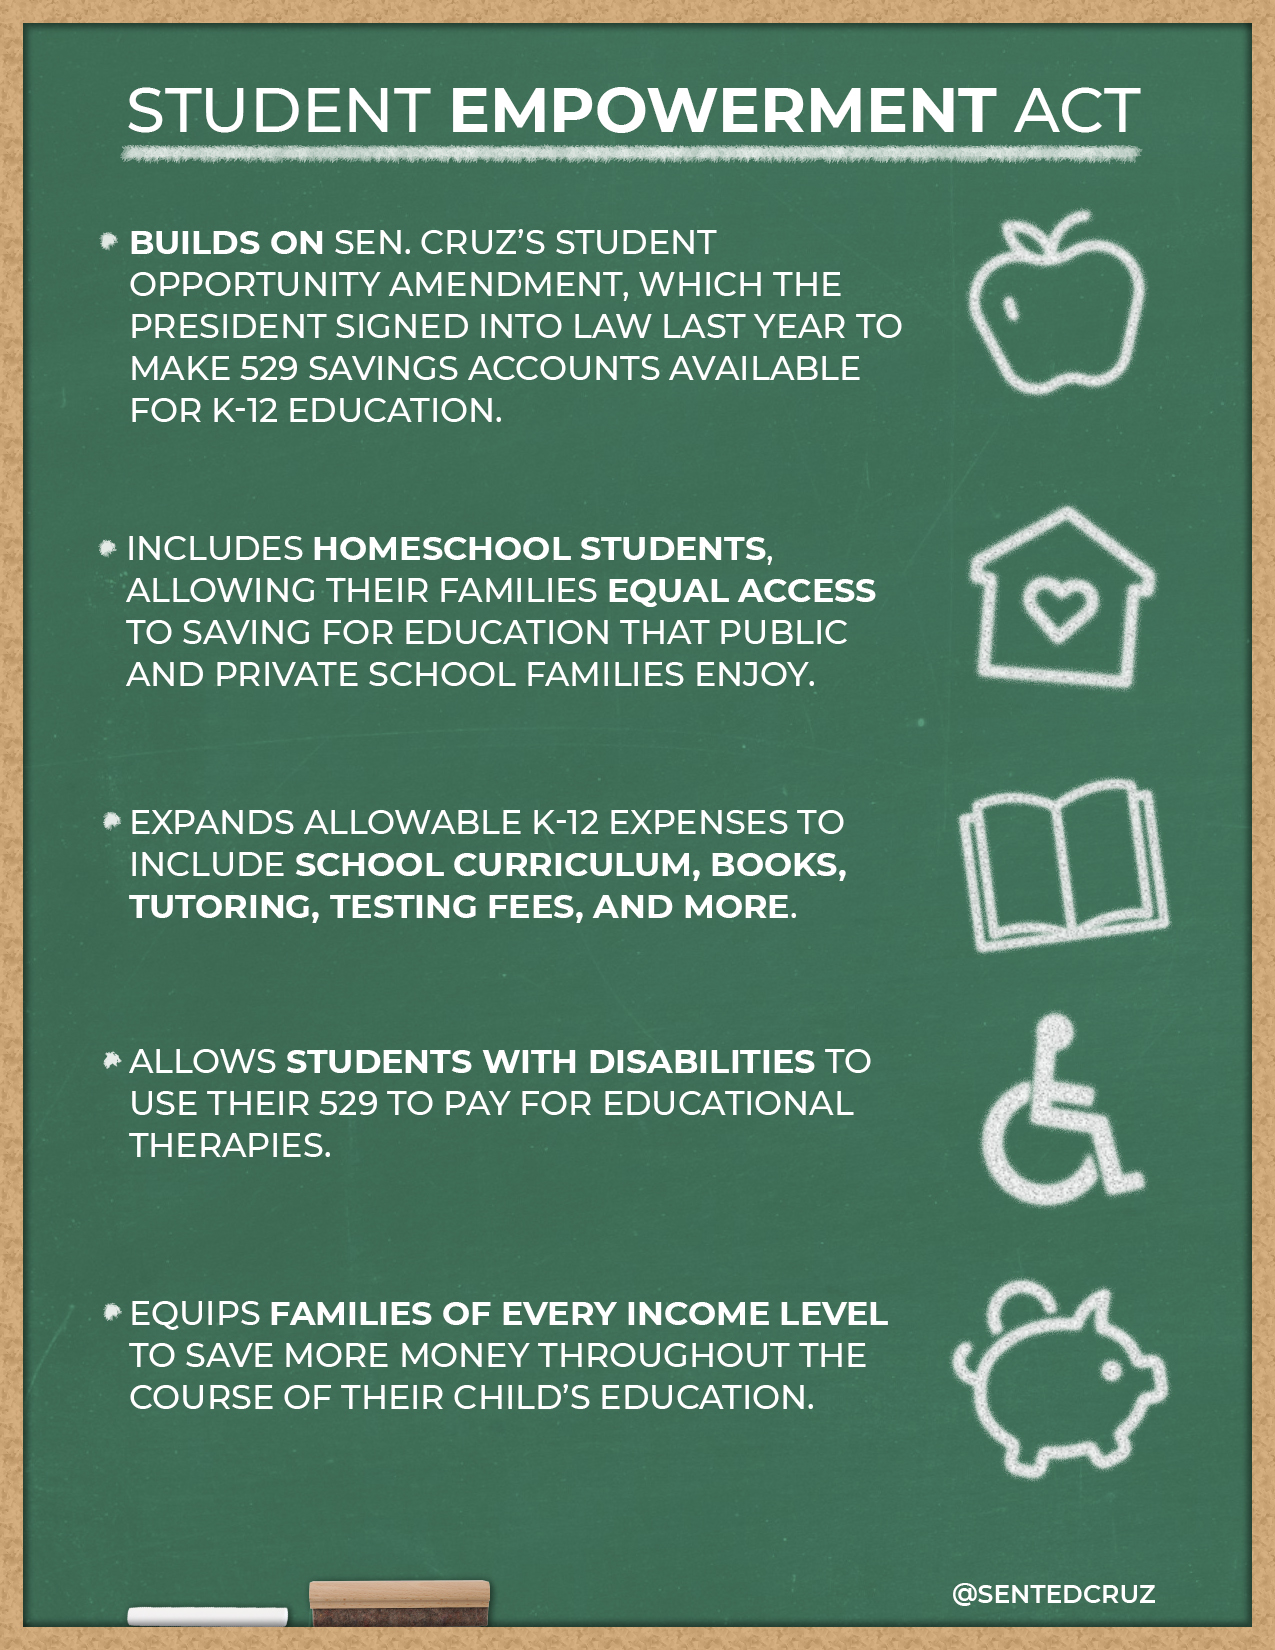 student empowerment Today i introduced the student empowerment act this bill would expand 529  college savings plans to include k-12 elementary and.